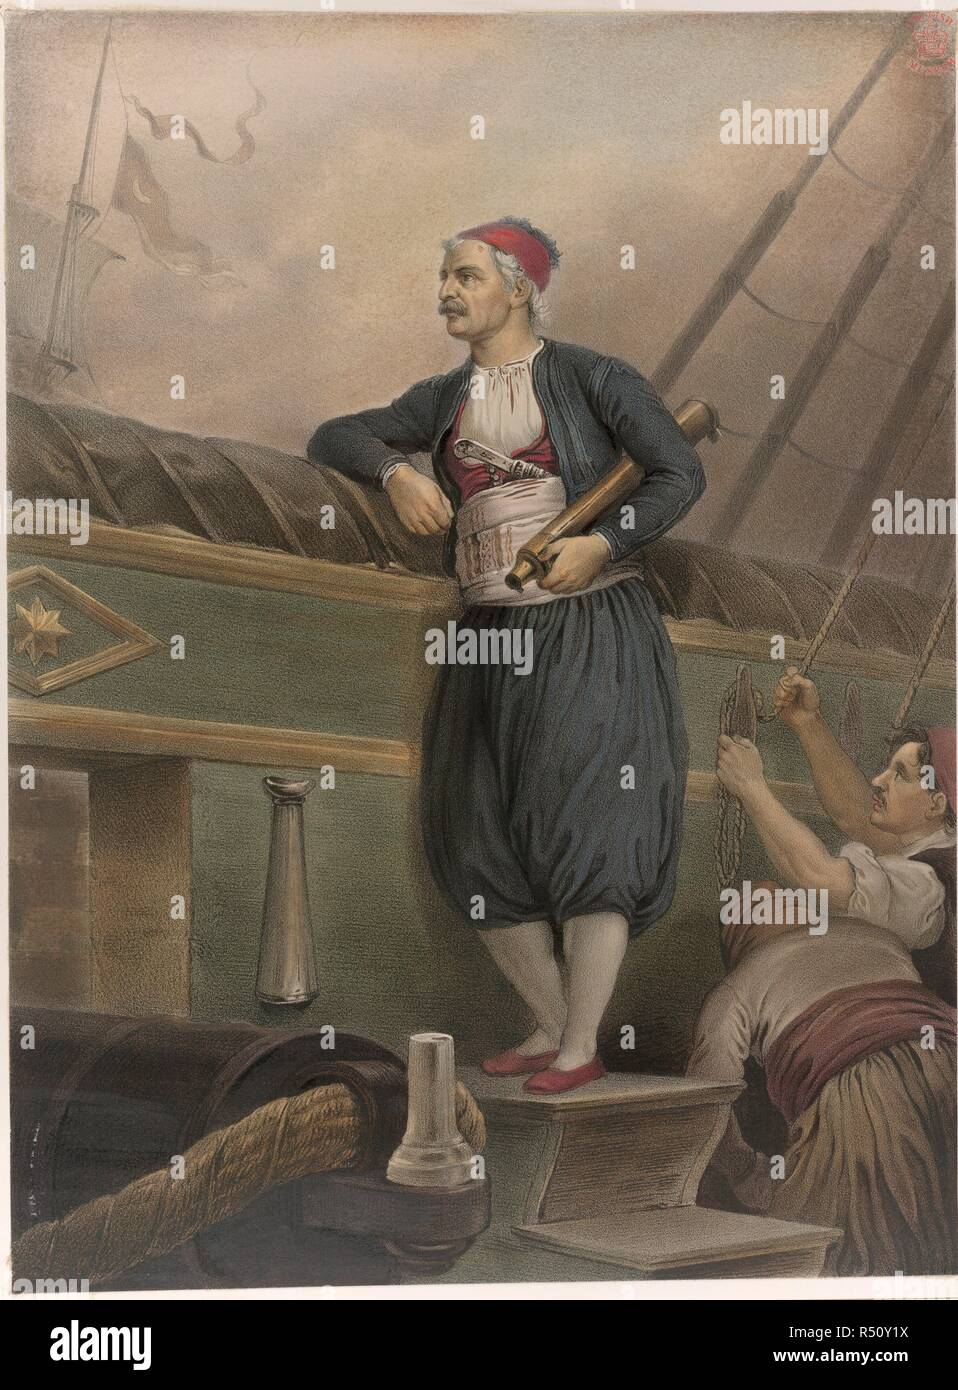 A Greek sailor on board a ship. Album of Greek Heroism, or the Deliverance of Greece Painted by P H-Befreiung Griechenlands in XXXIX Bildern entworfen von P H. München, [1852-54.]. Source: N.TAB. 2017/17. Stock Photo